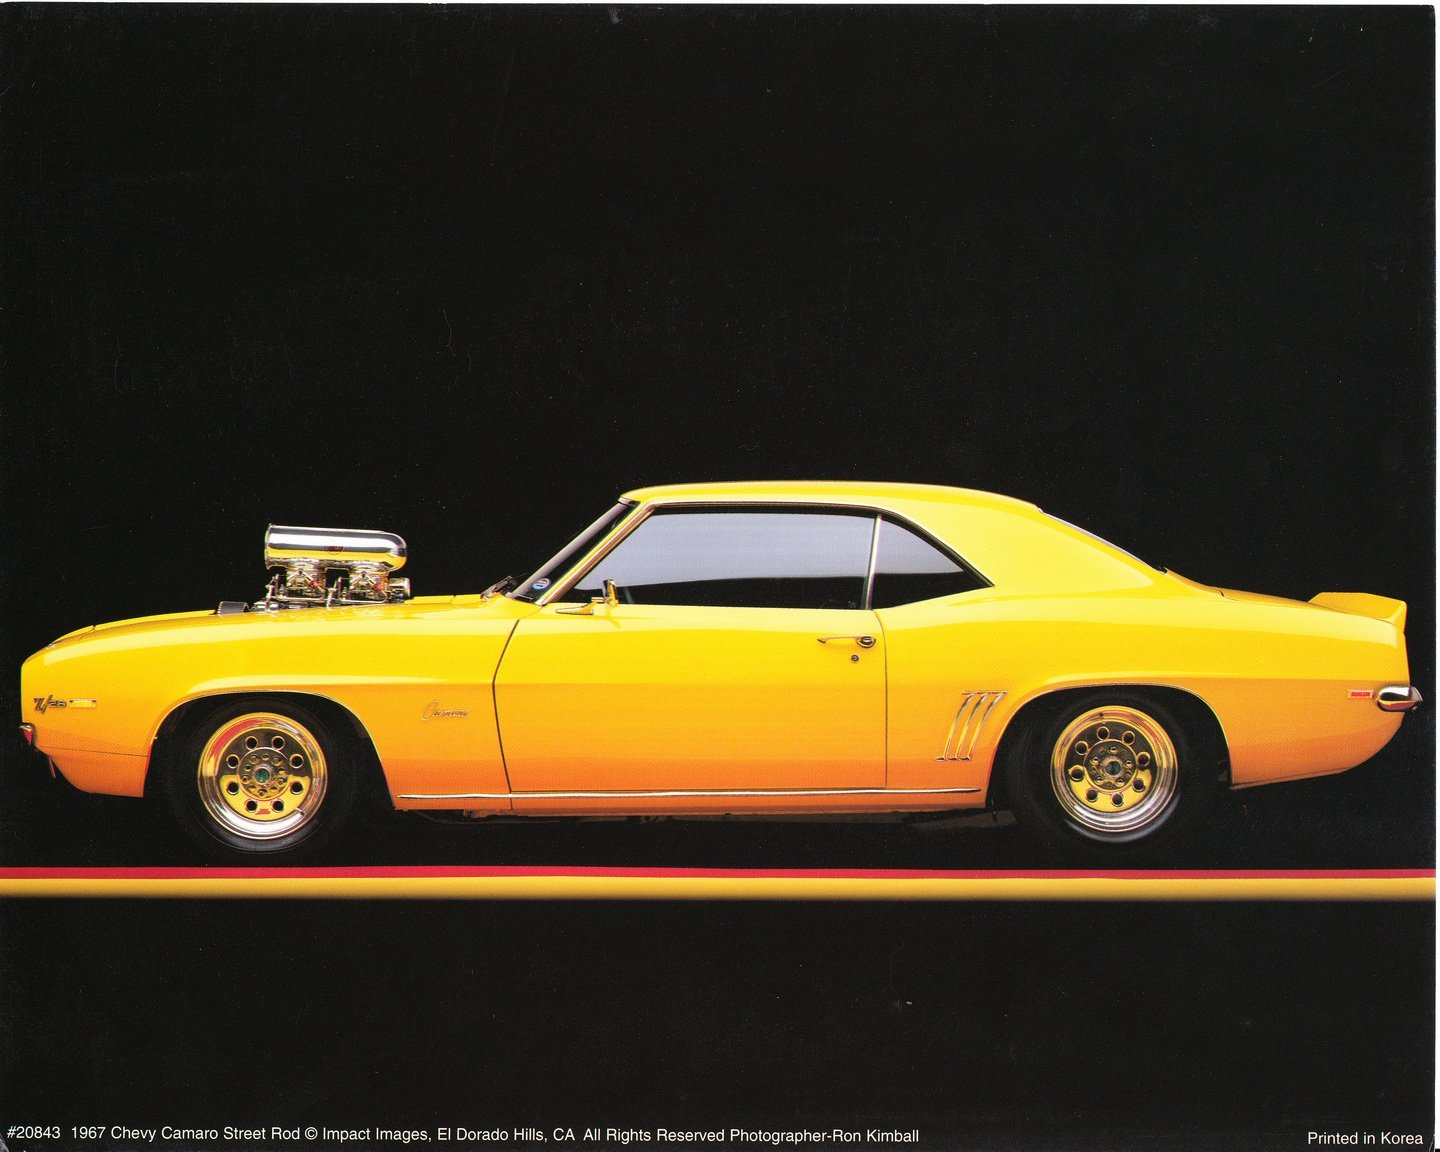 Amazon.com: 1967 Chevy Camaro Poster Street Rod Vintage Car Art ...